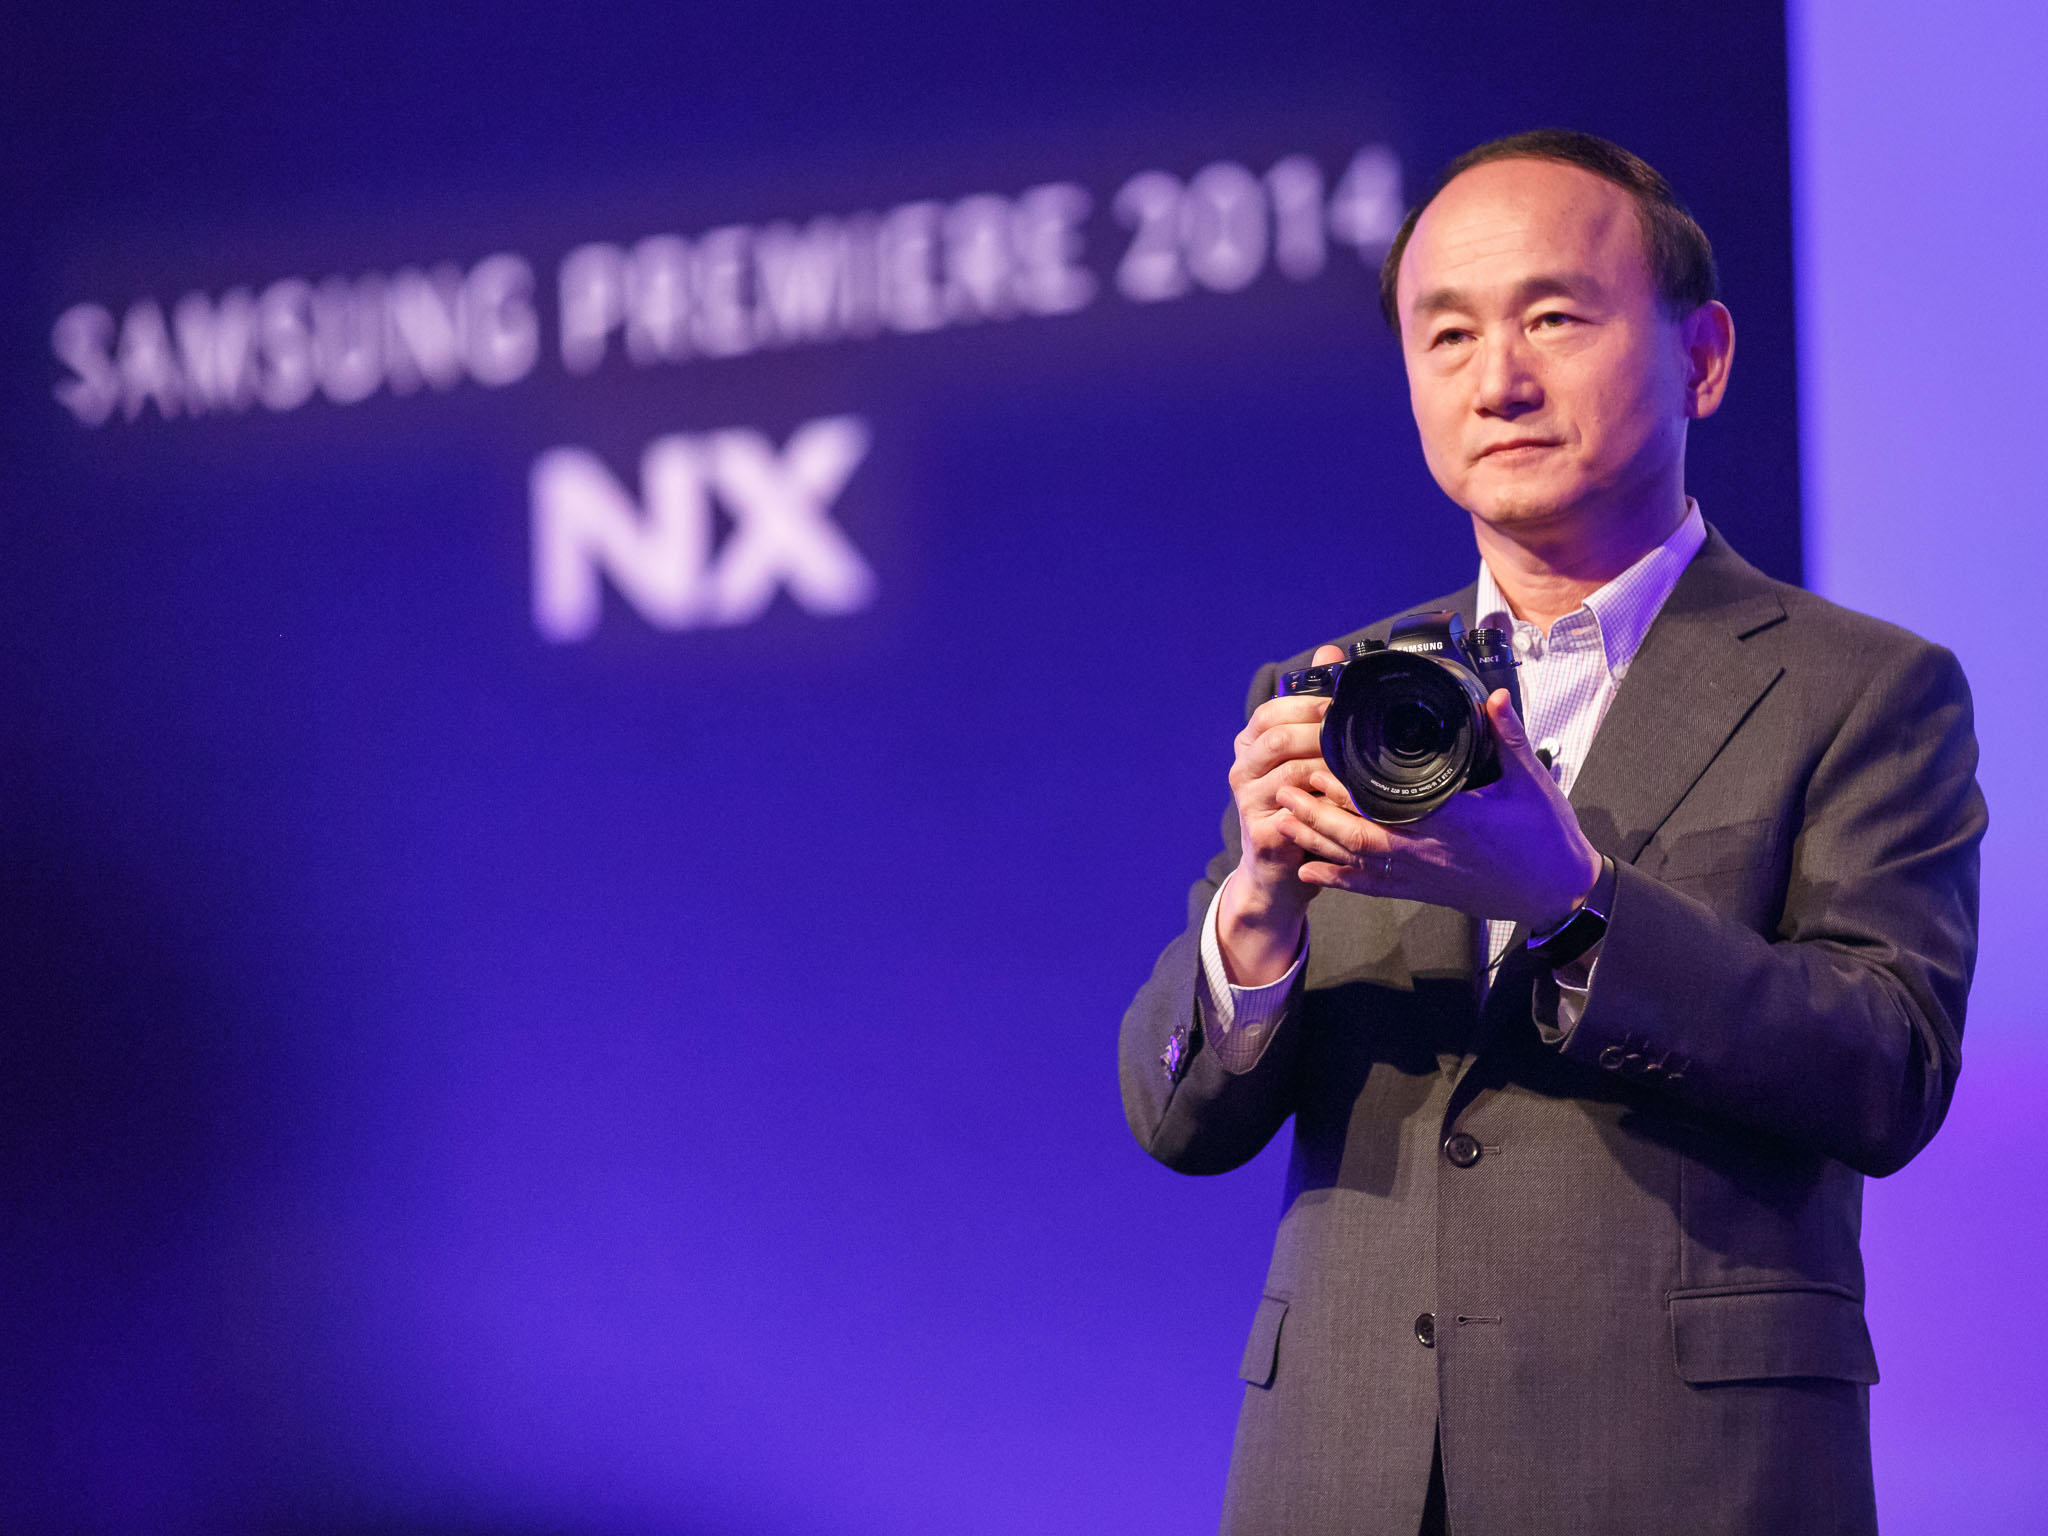 Patent holders cut streaming fees for next-gen video tech